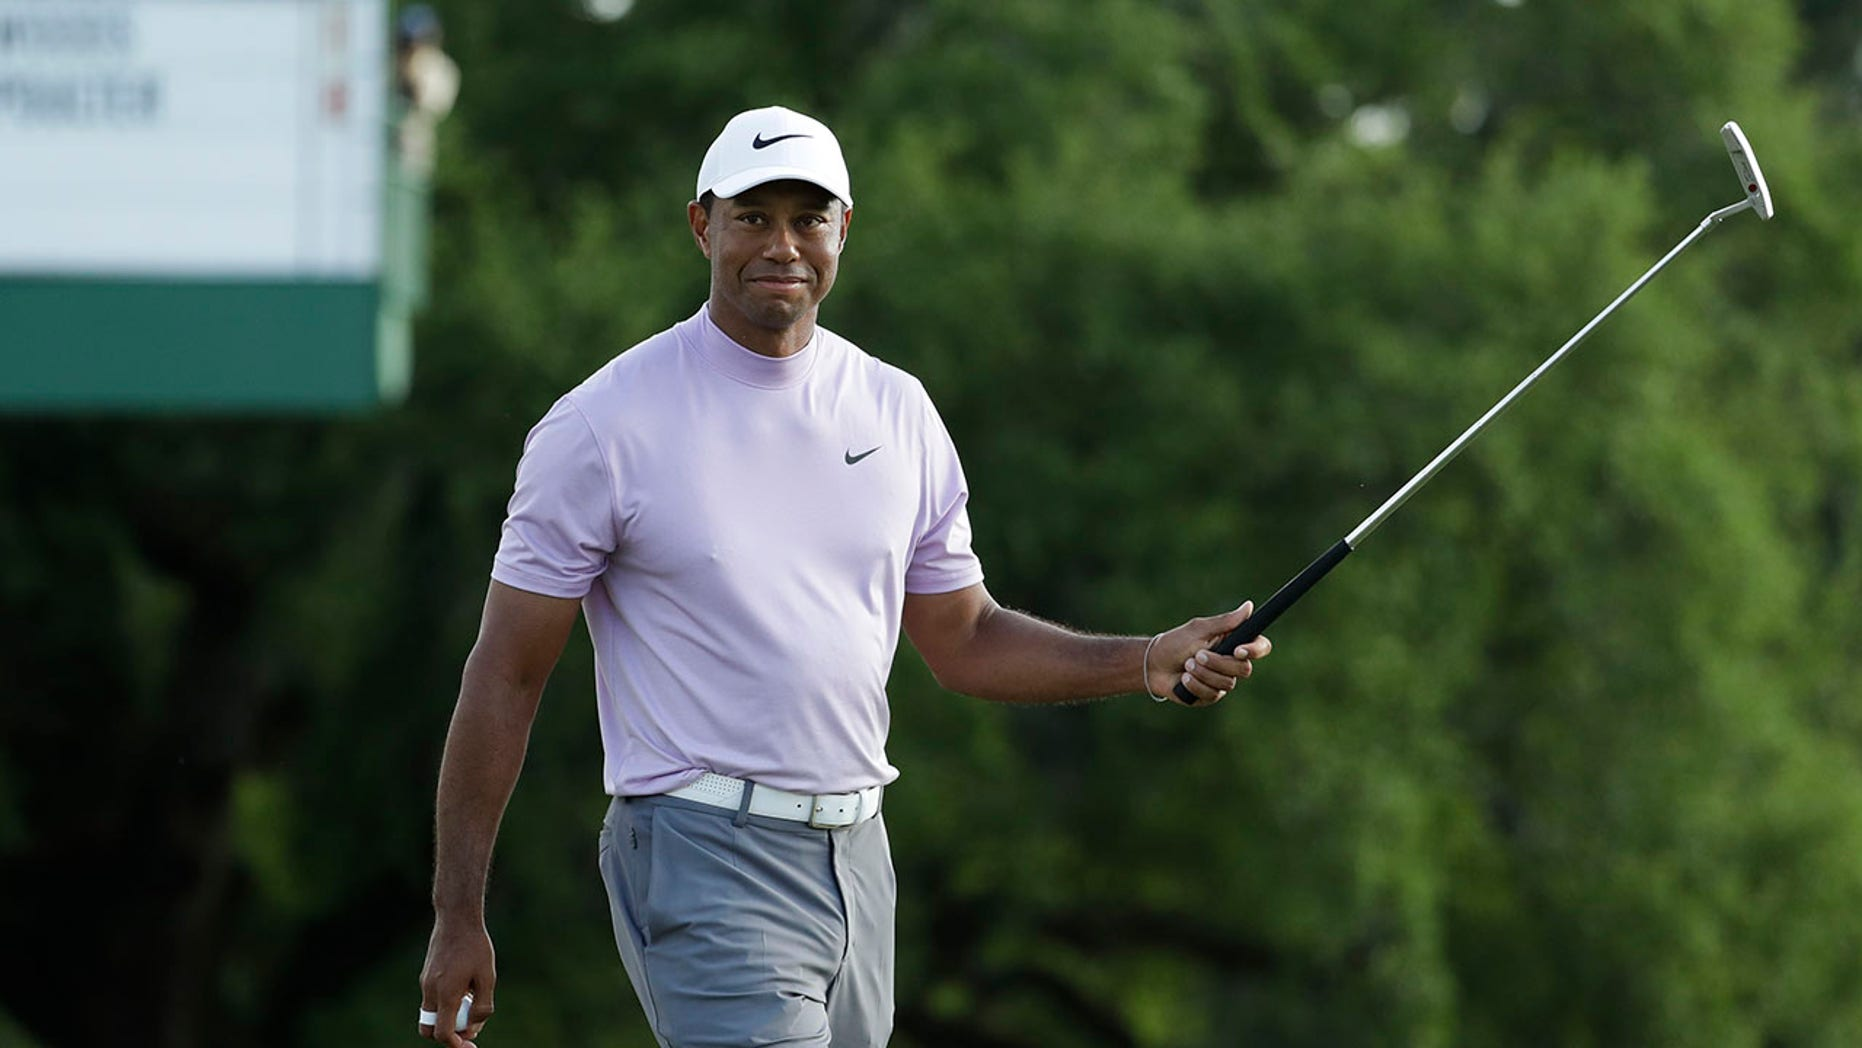 Tiger Woods stars in Nike ad released after Masters win